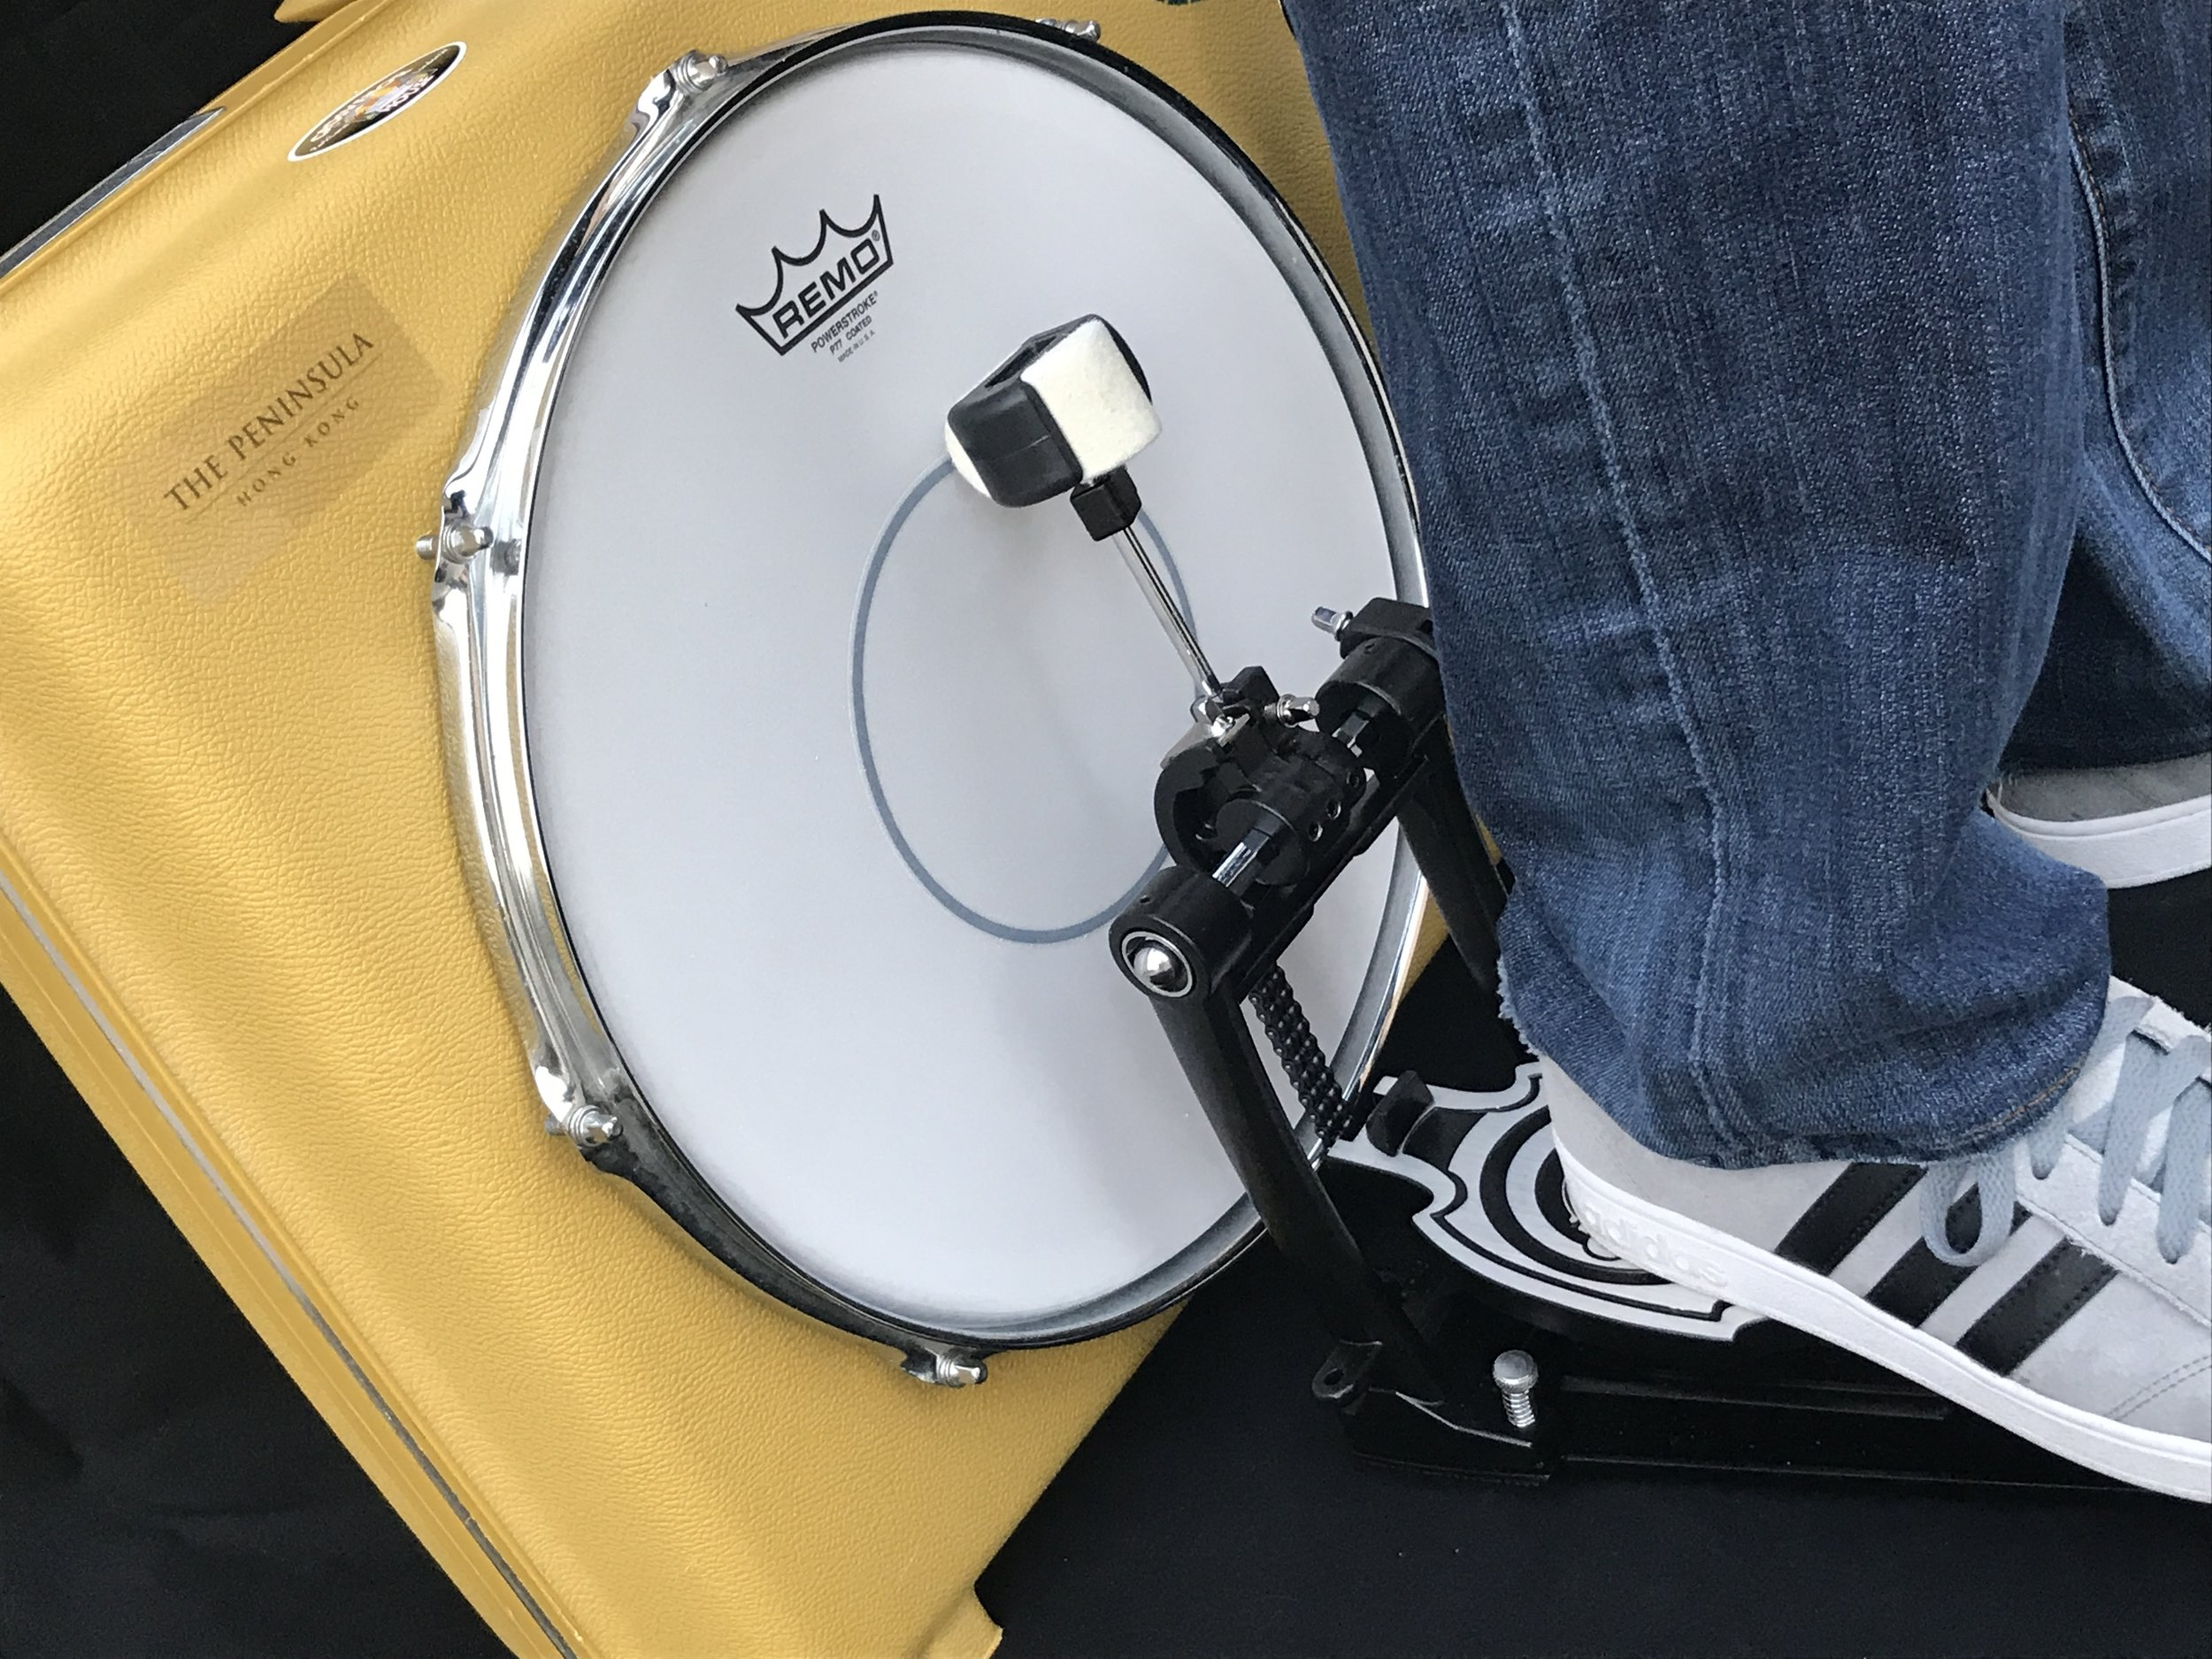 Play the drums with your heel while jamming on your guitar or bass.